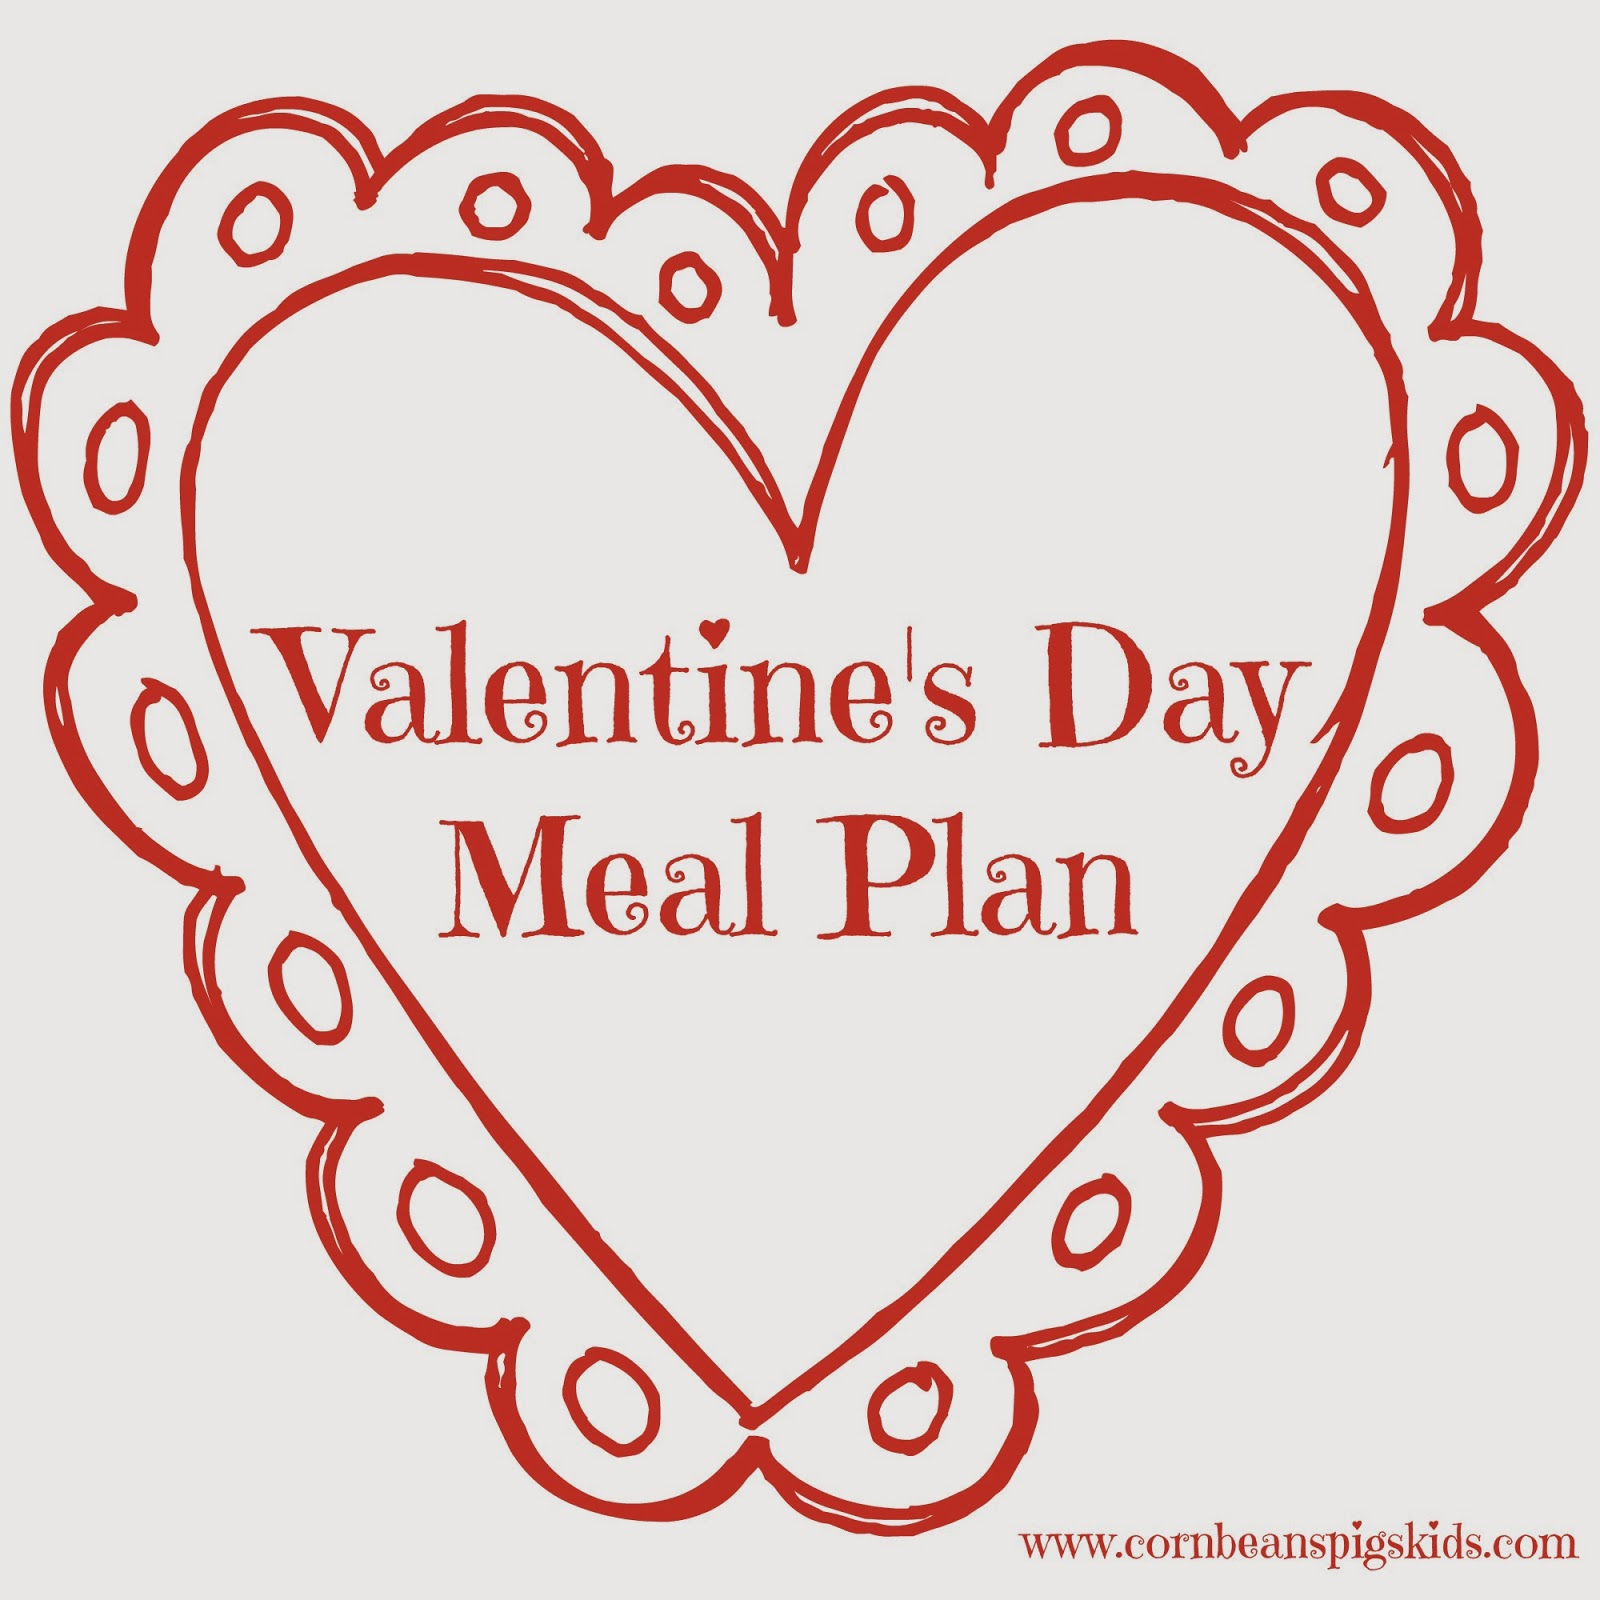 Valentine's Day Menu Plan